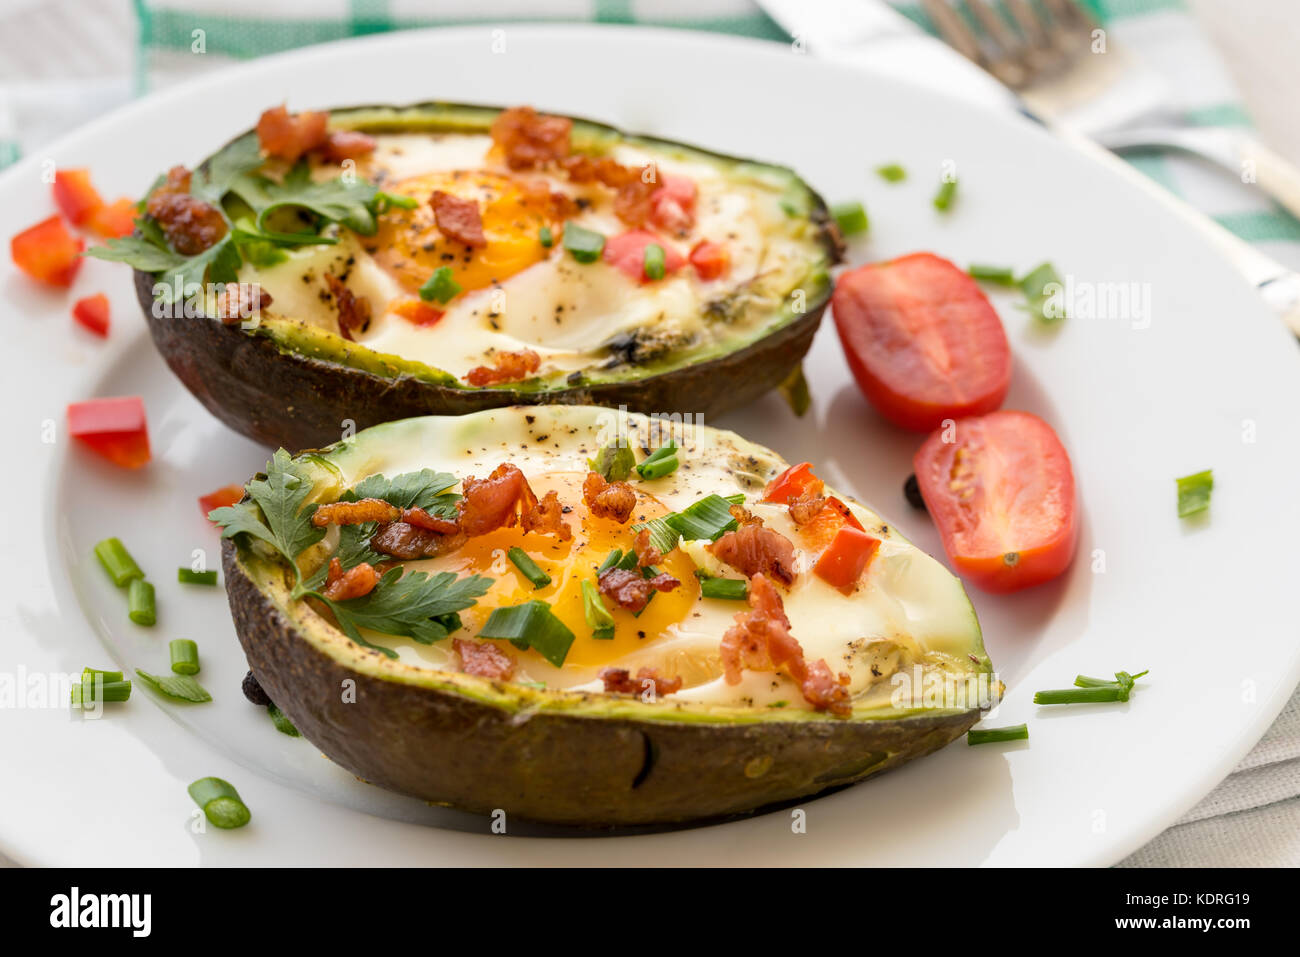 Eggs baked in avocado with bacon, red paprika and chive. Stock Photo